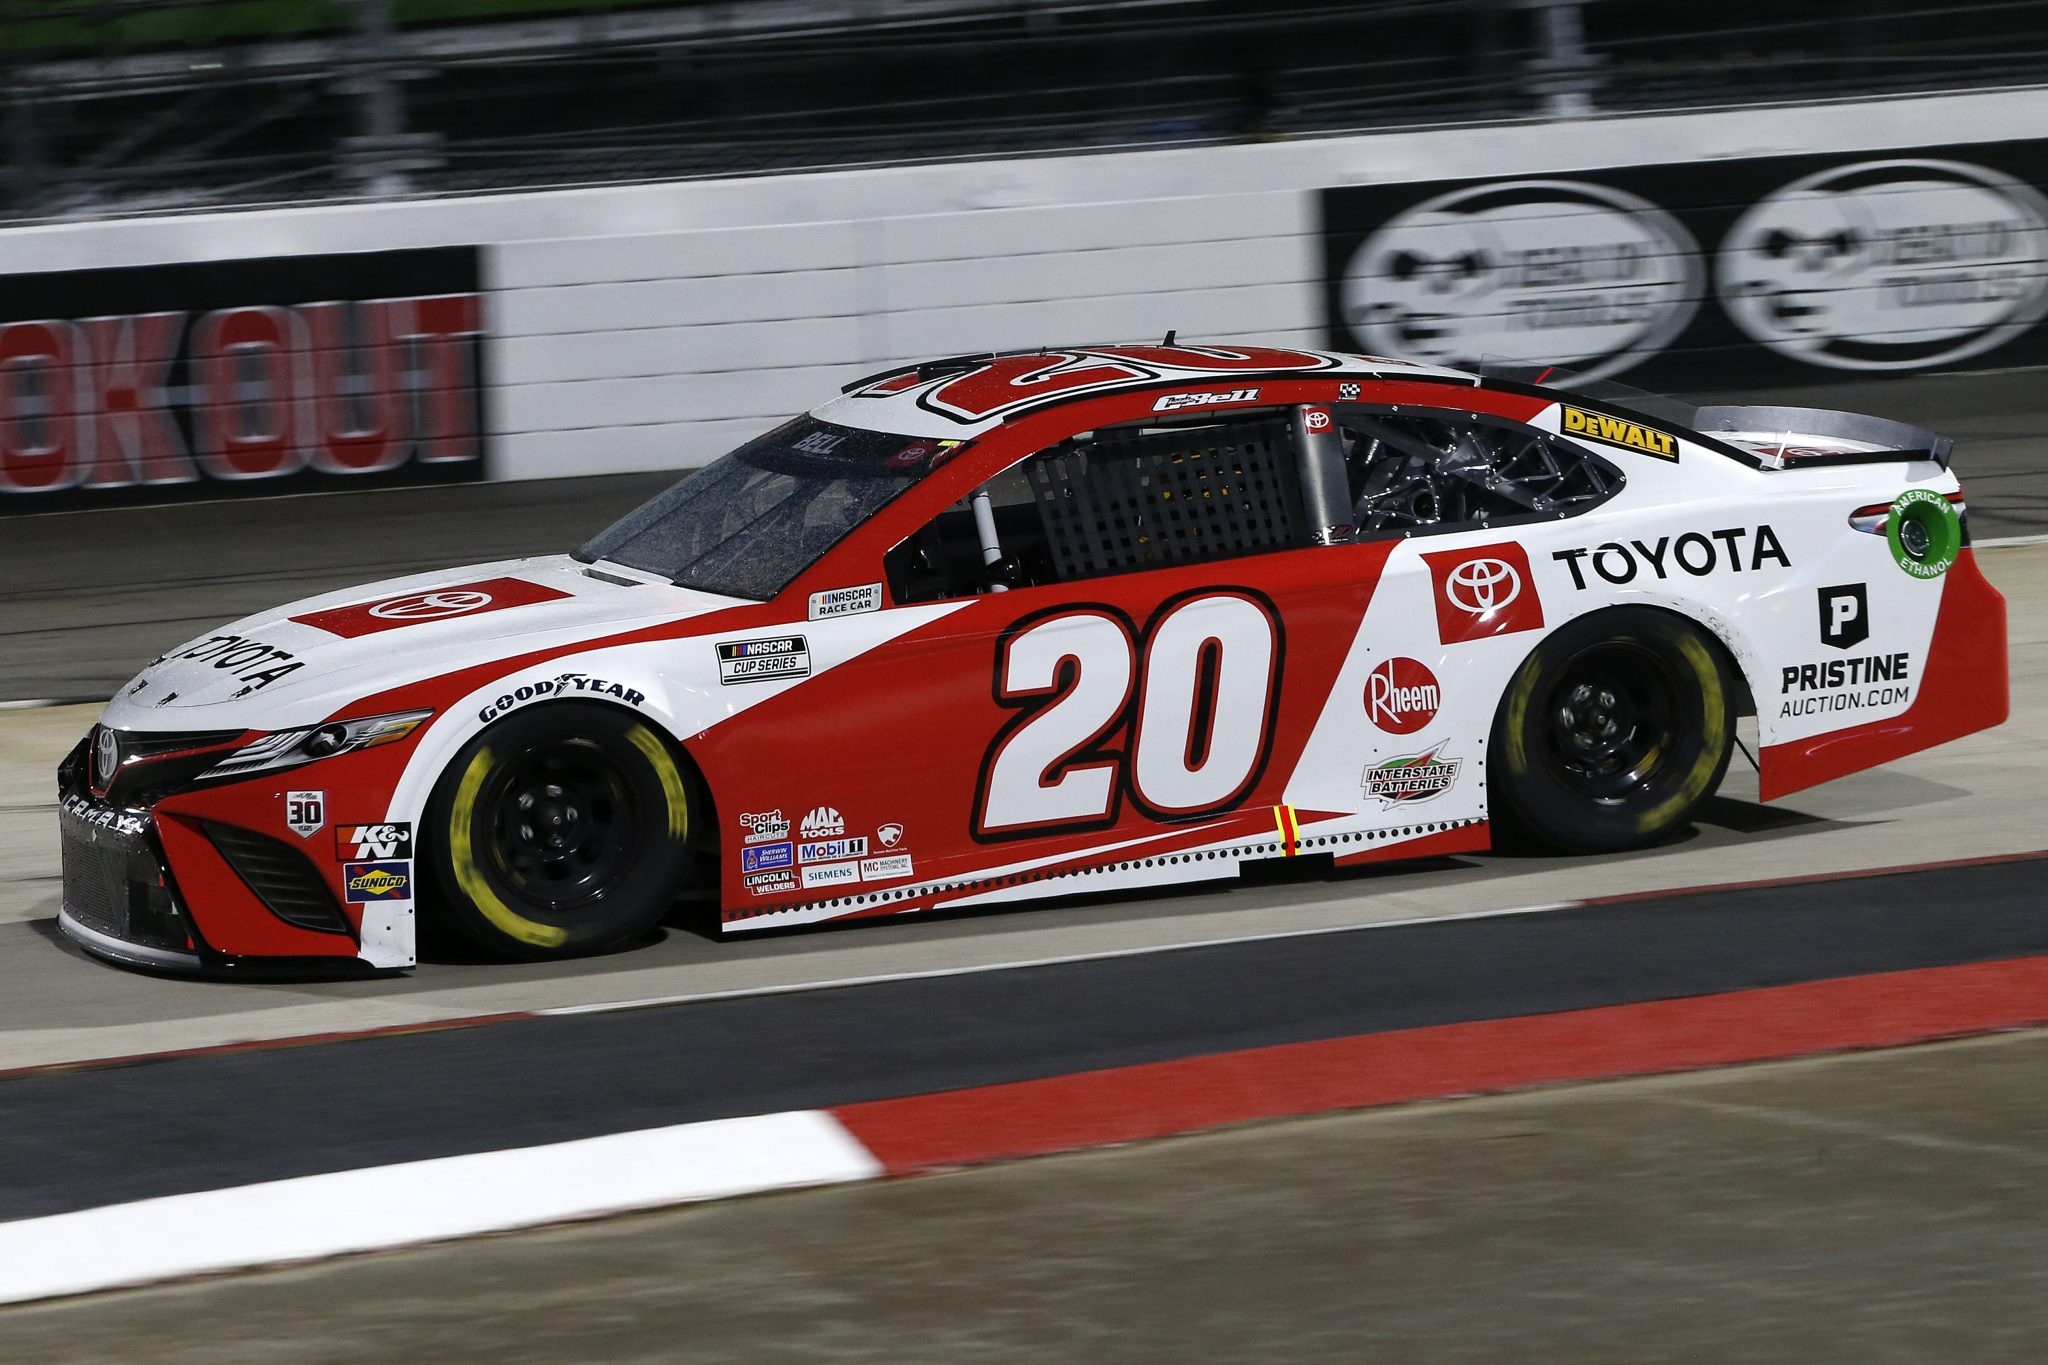 MARTINSVILLE, VIRGINIA - APRIL 10: Christopher Bell, driver of the #20 Toyota Toyota, drives during the NASCAR Cup Series Blue-Emu Maximum Pain Relief 500 at Martinsville Speedway on April 10, 2021 in Martinsville, Virginia. (Photo by Brian Lawdermilk/Getty Images) | Getty Images